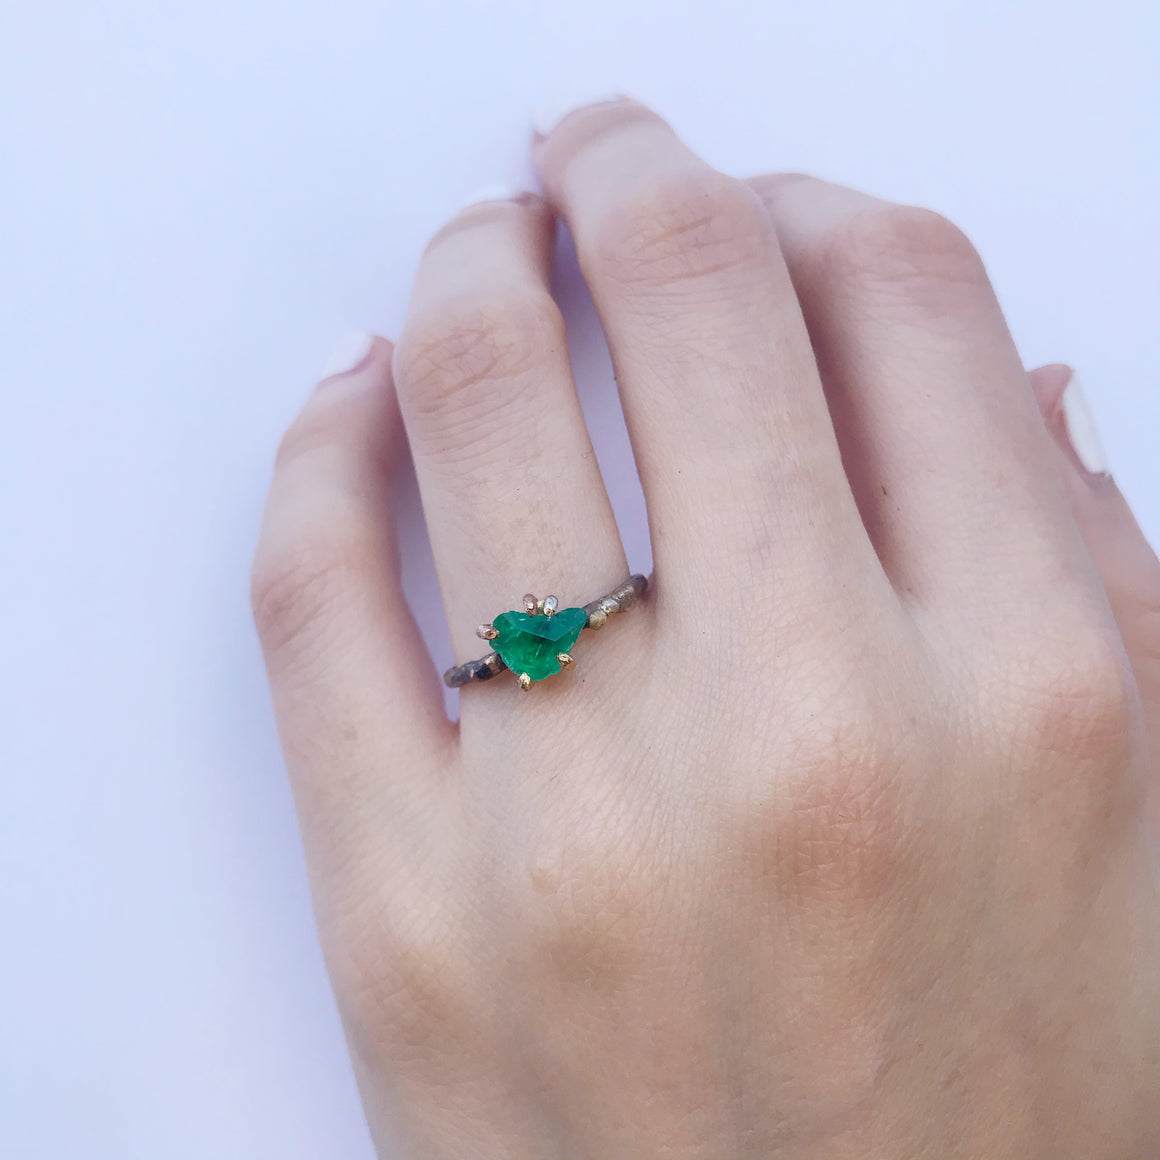 Zambian Emerald Claw Ring